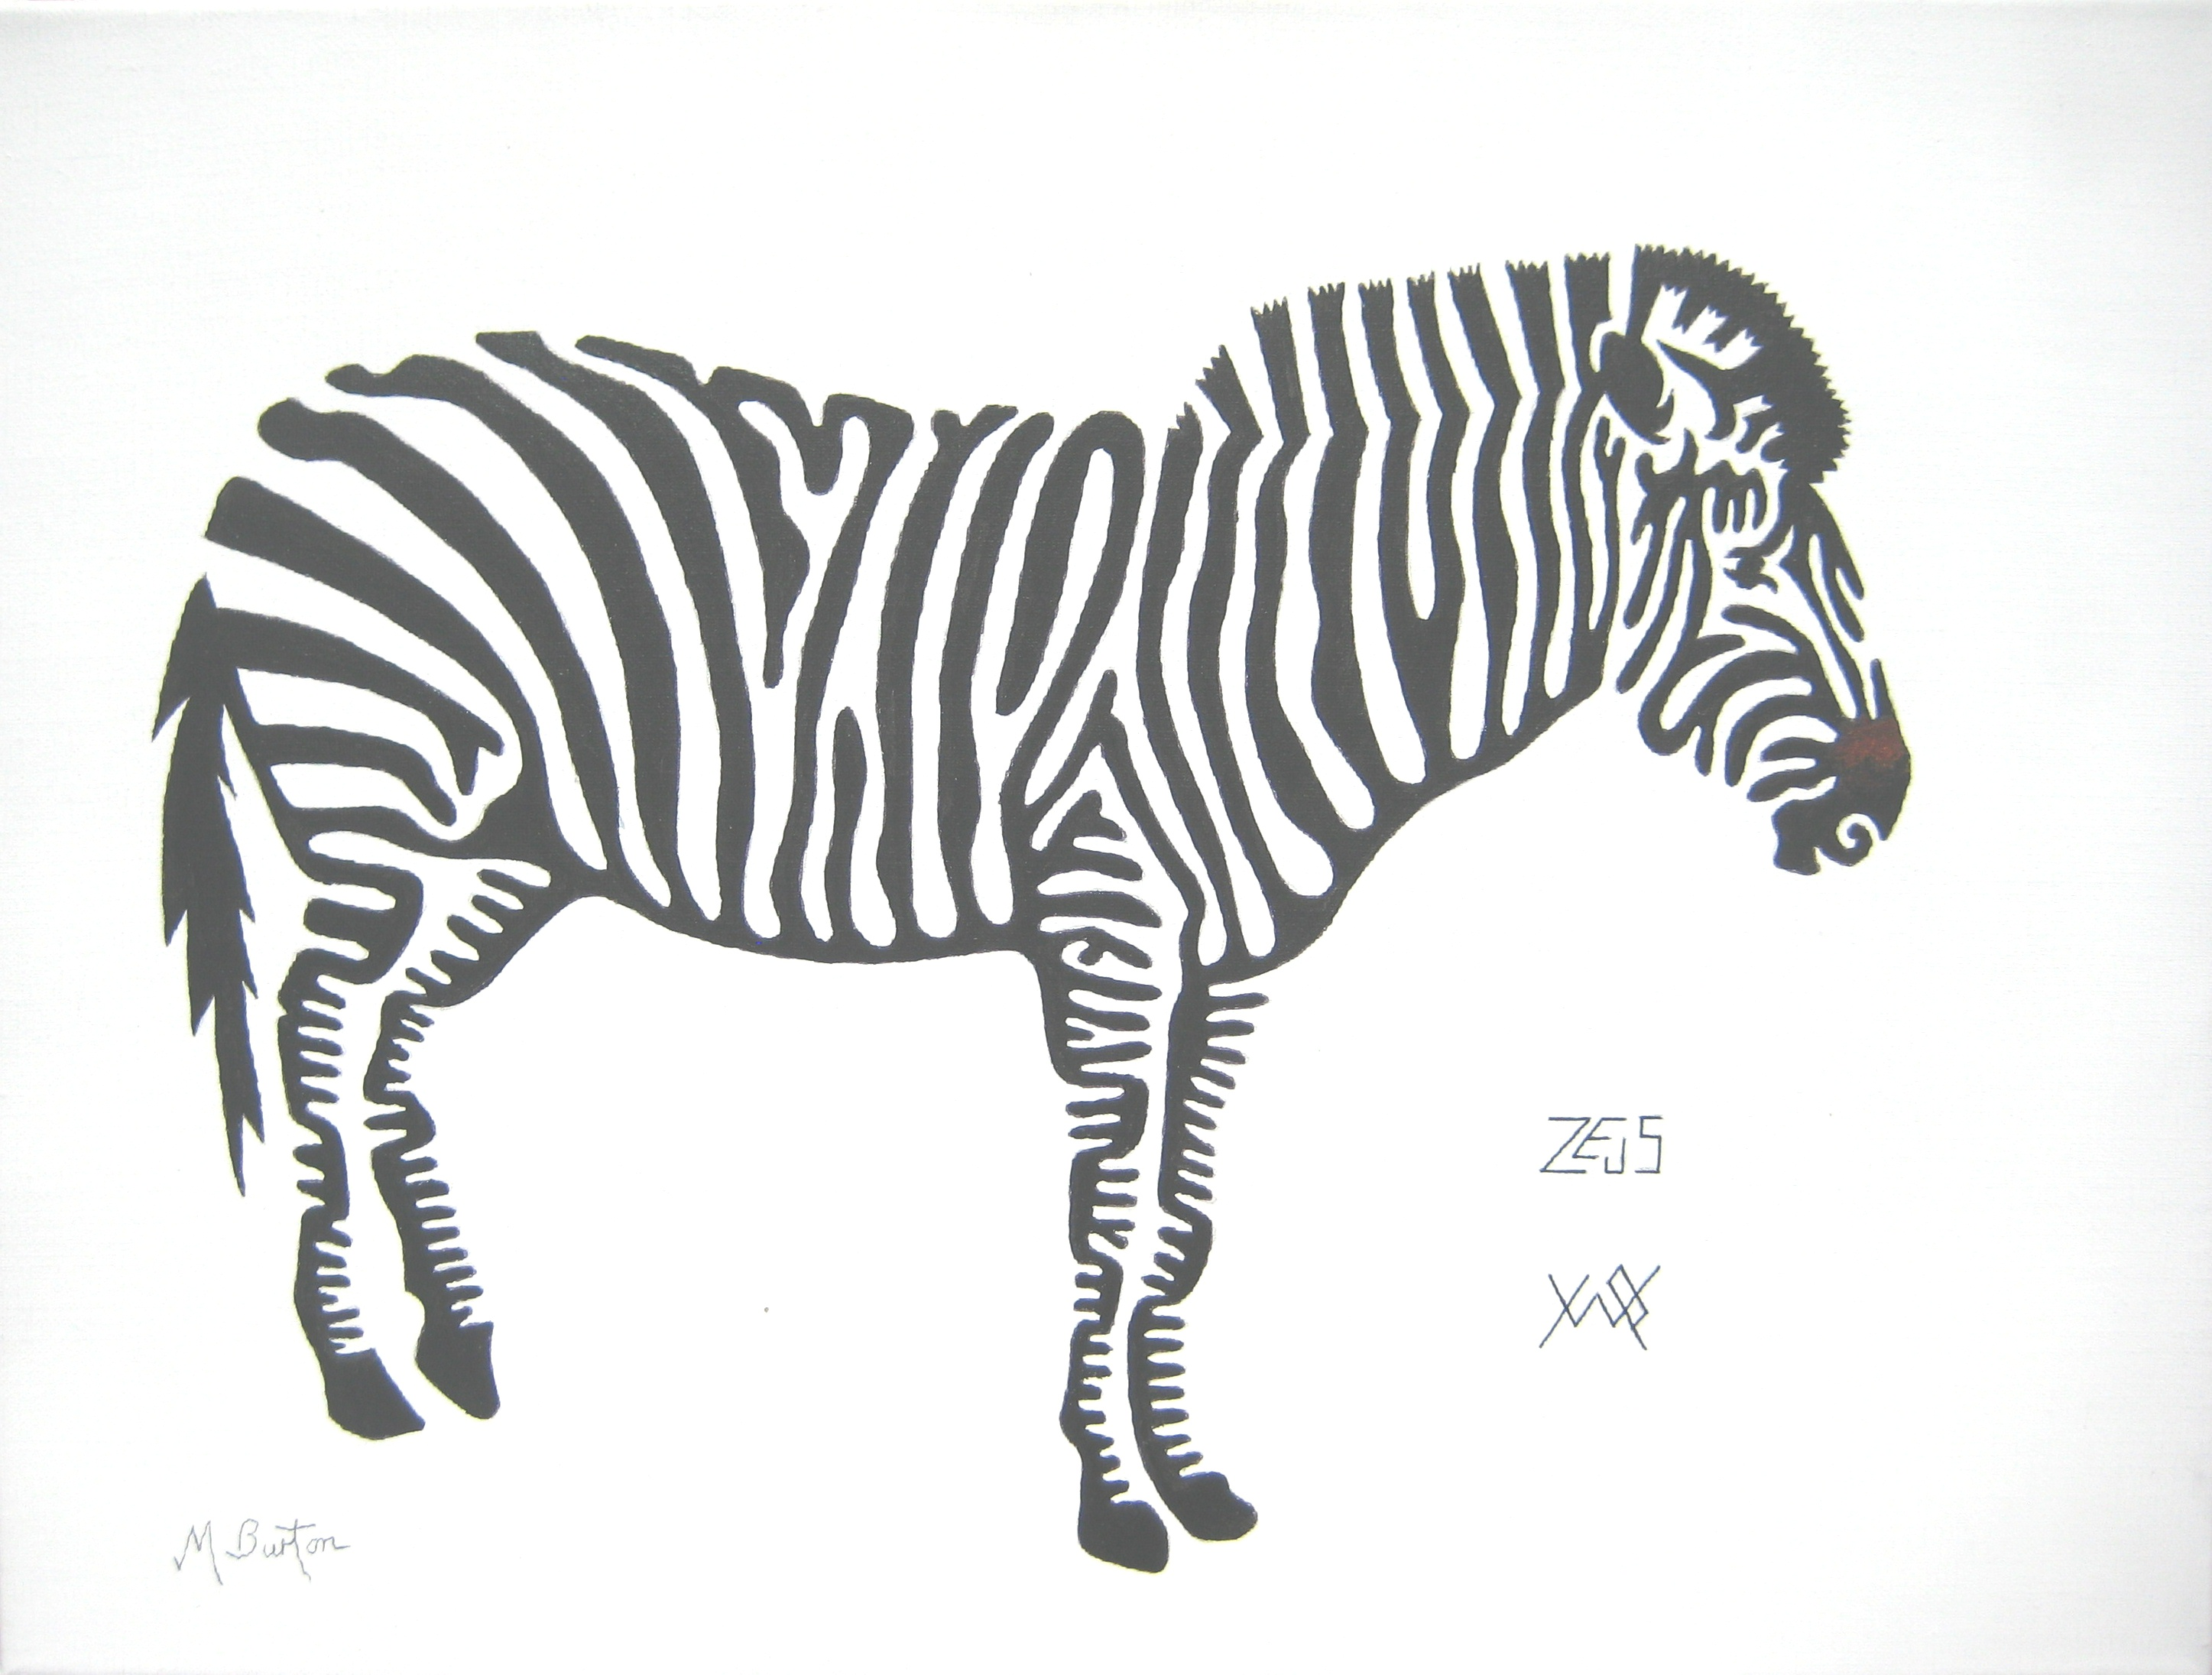 Line Drawing Zebra : Association of animal artists mick burton